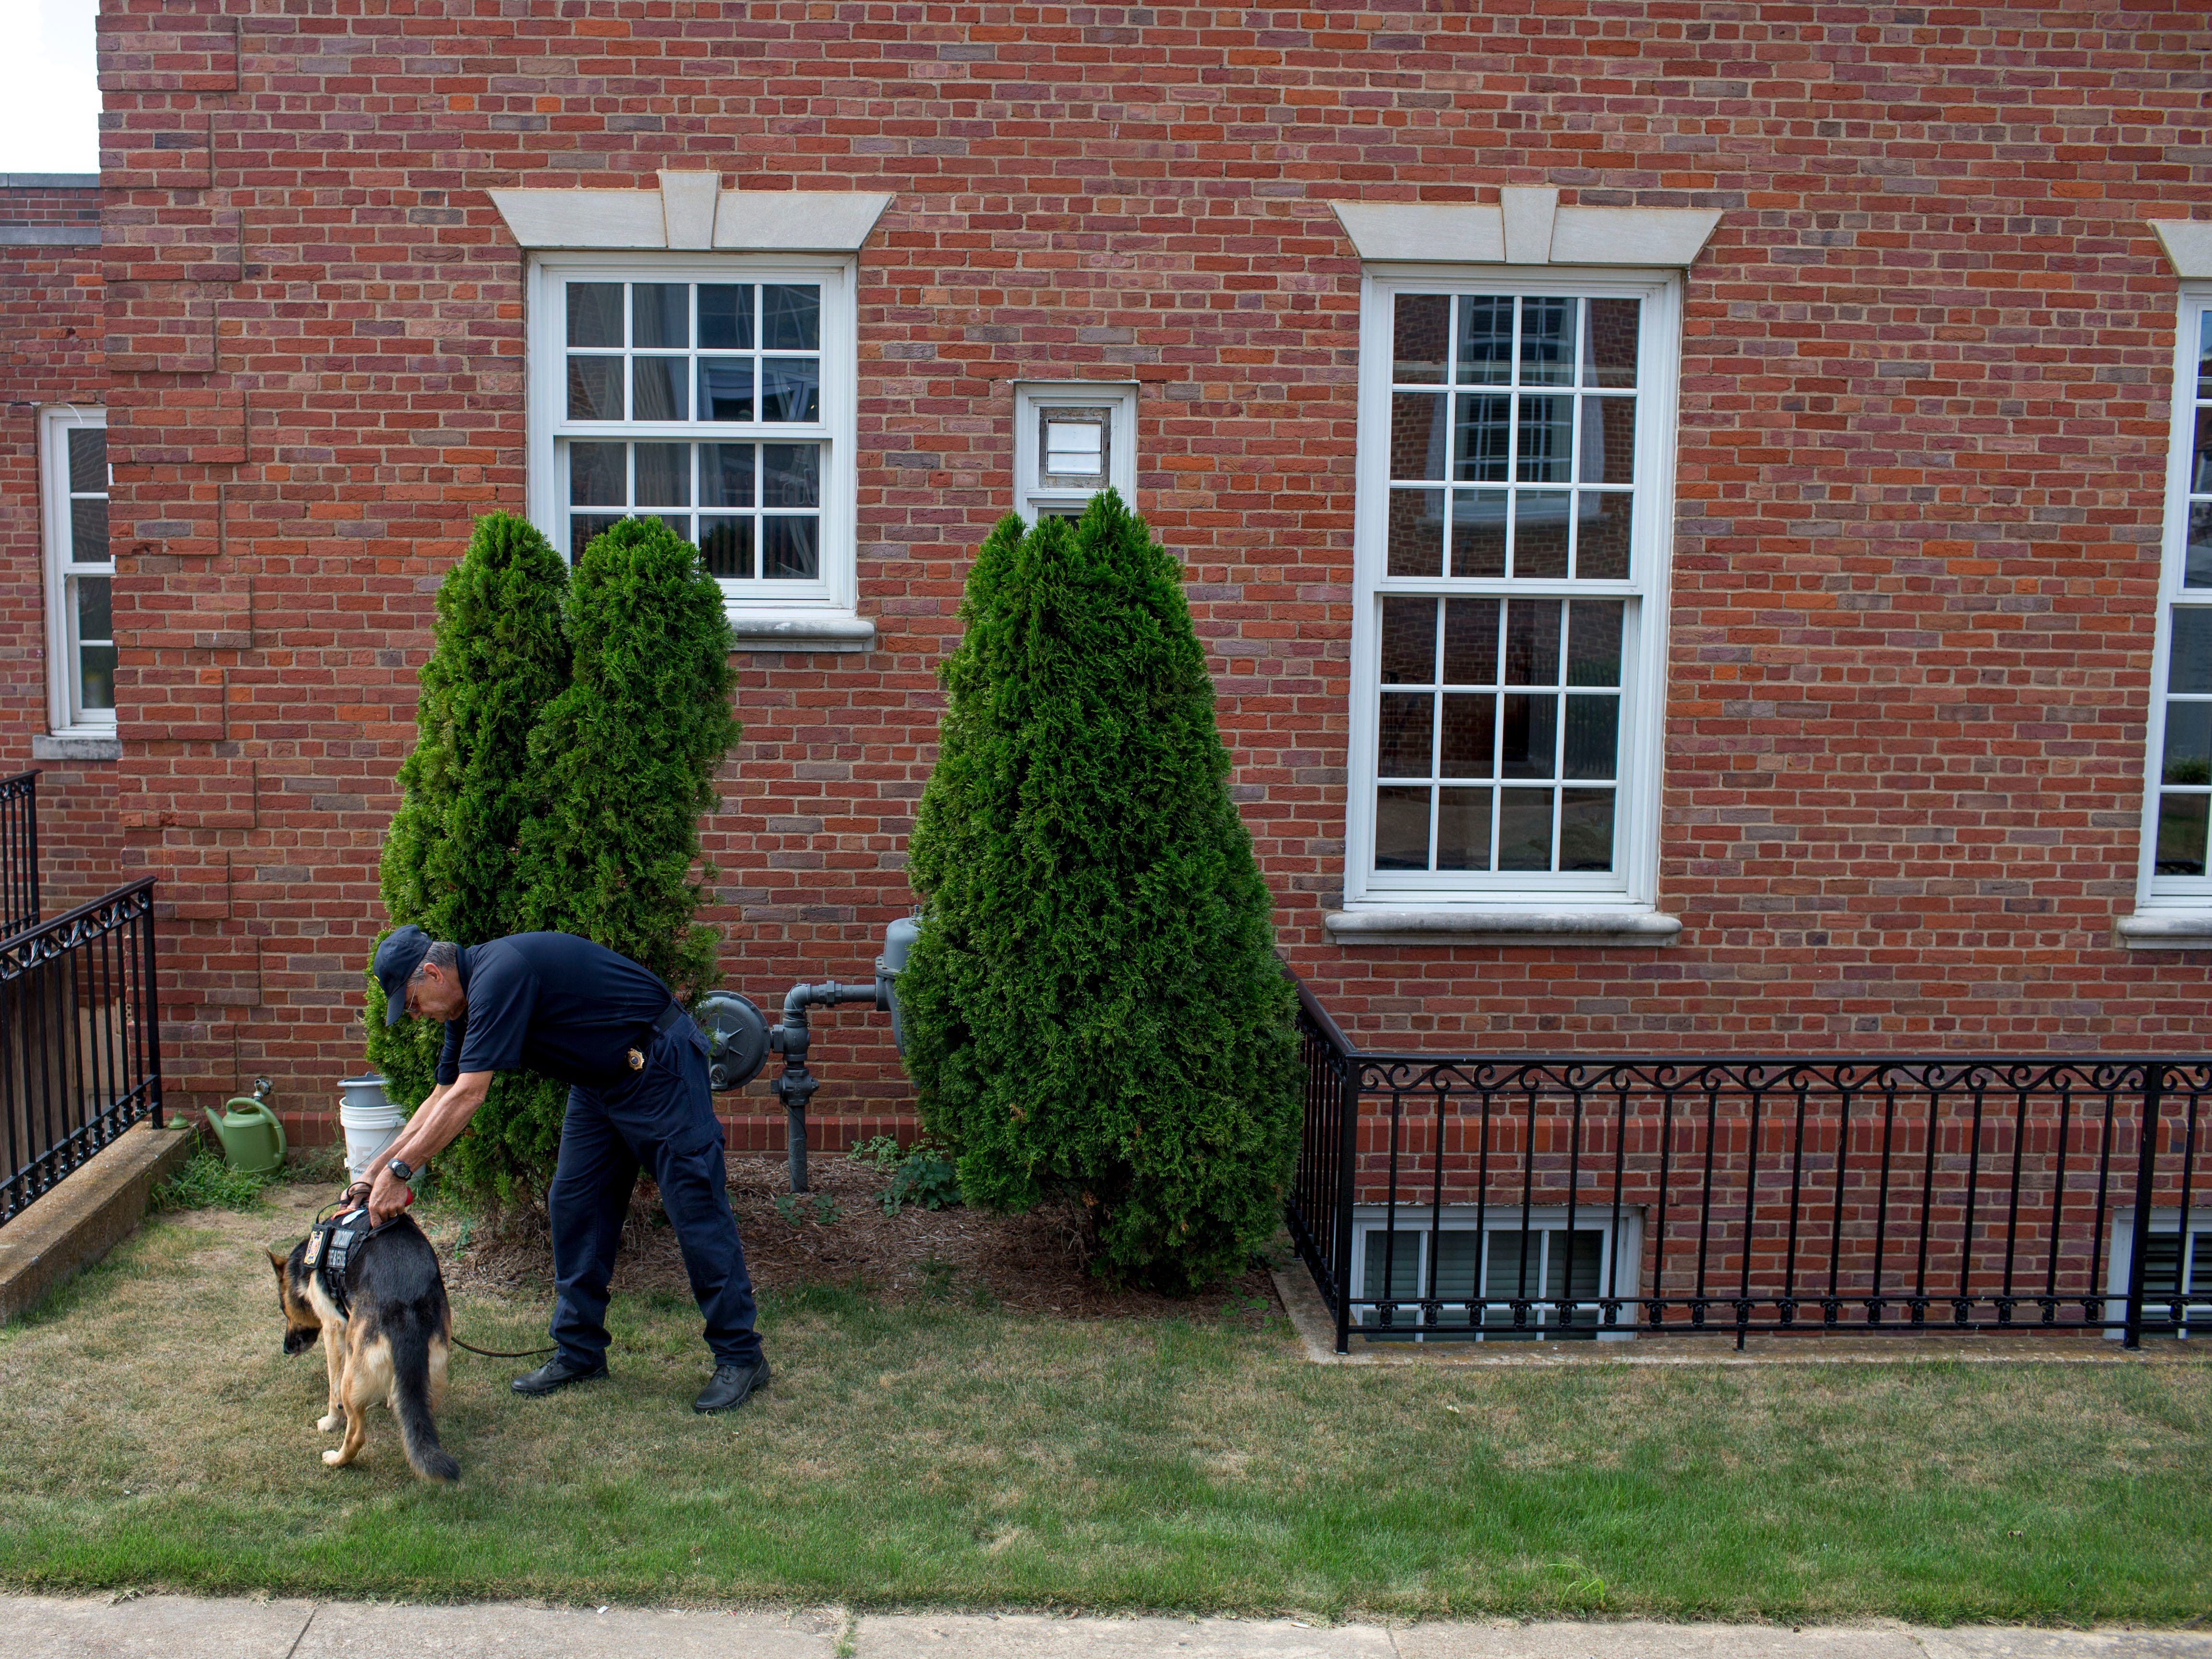 William Branum, the Hardin County fire district 14 chief, steps outside with his partner Jodi-Le at Hardin County Circuit Court in Savannah, Tenn., on Monday, Sept. 17, 2018.